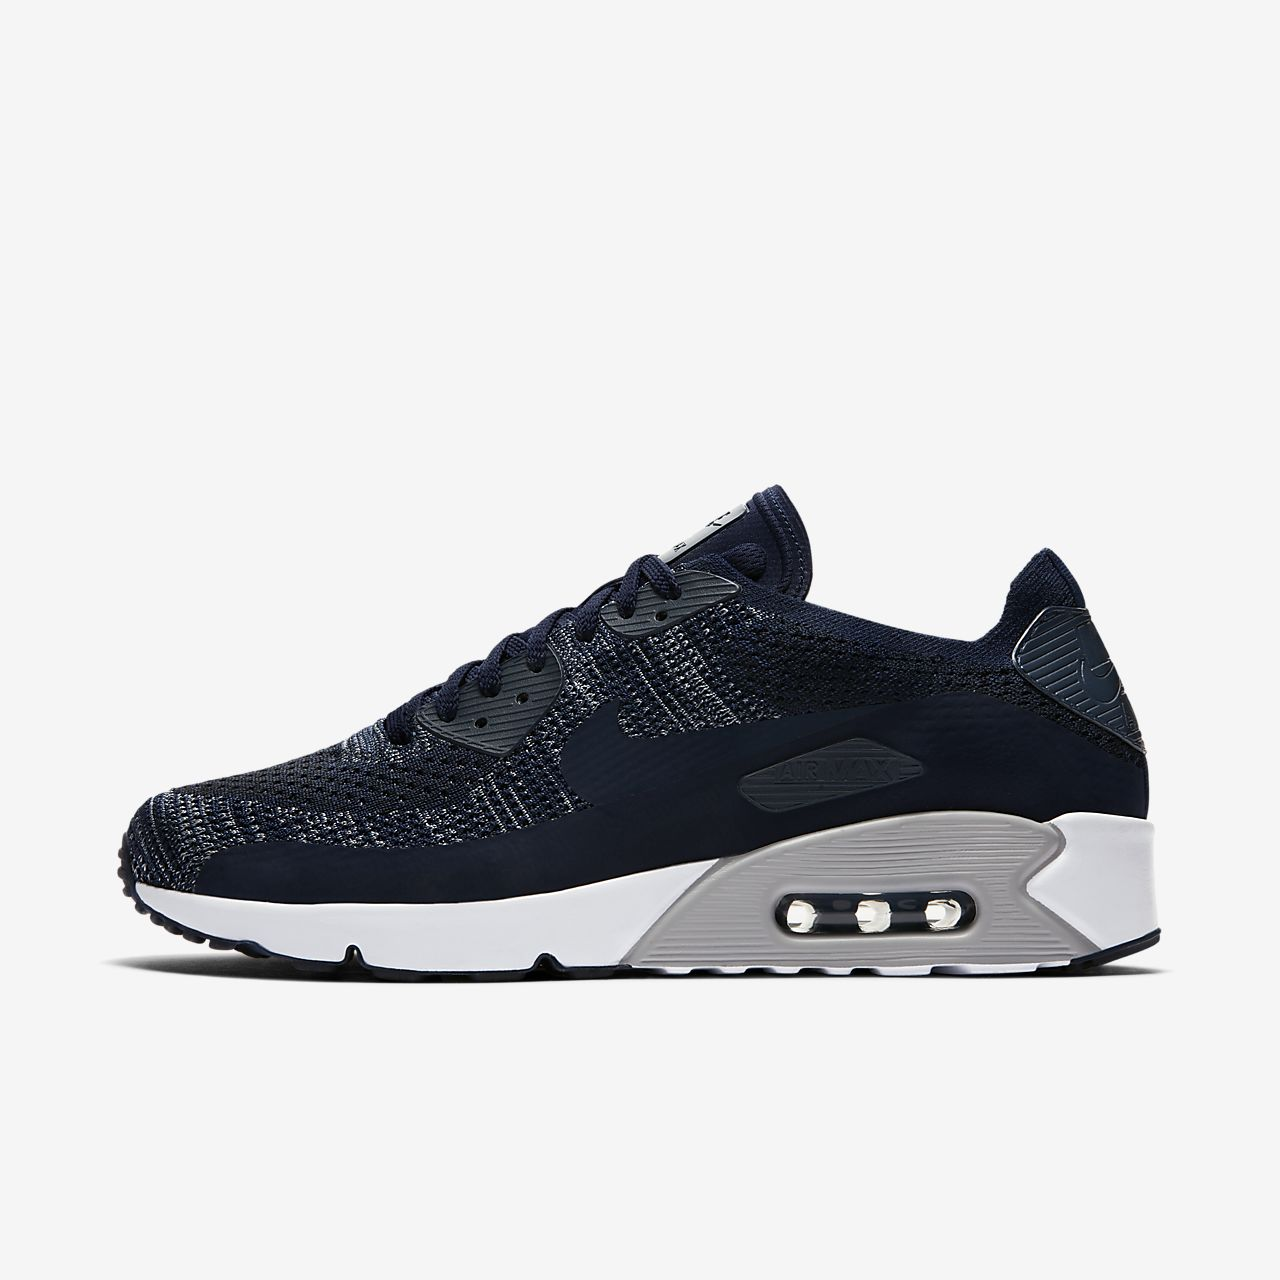 Nike Air Max 90 Ultra 2.0 Flyknit 'College Navy'. Nike SNKRS